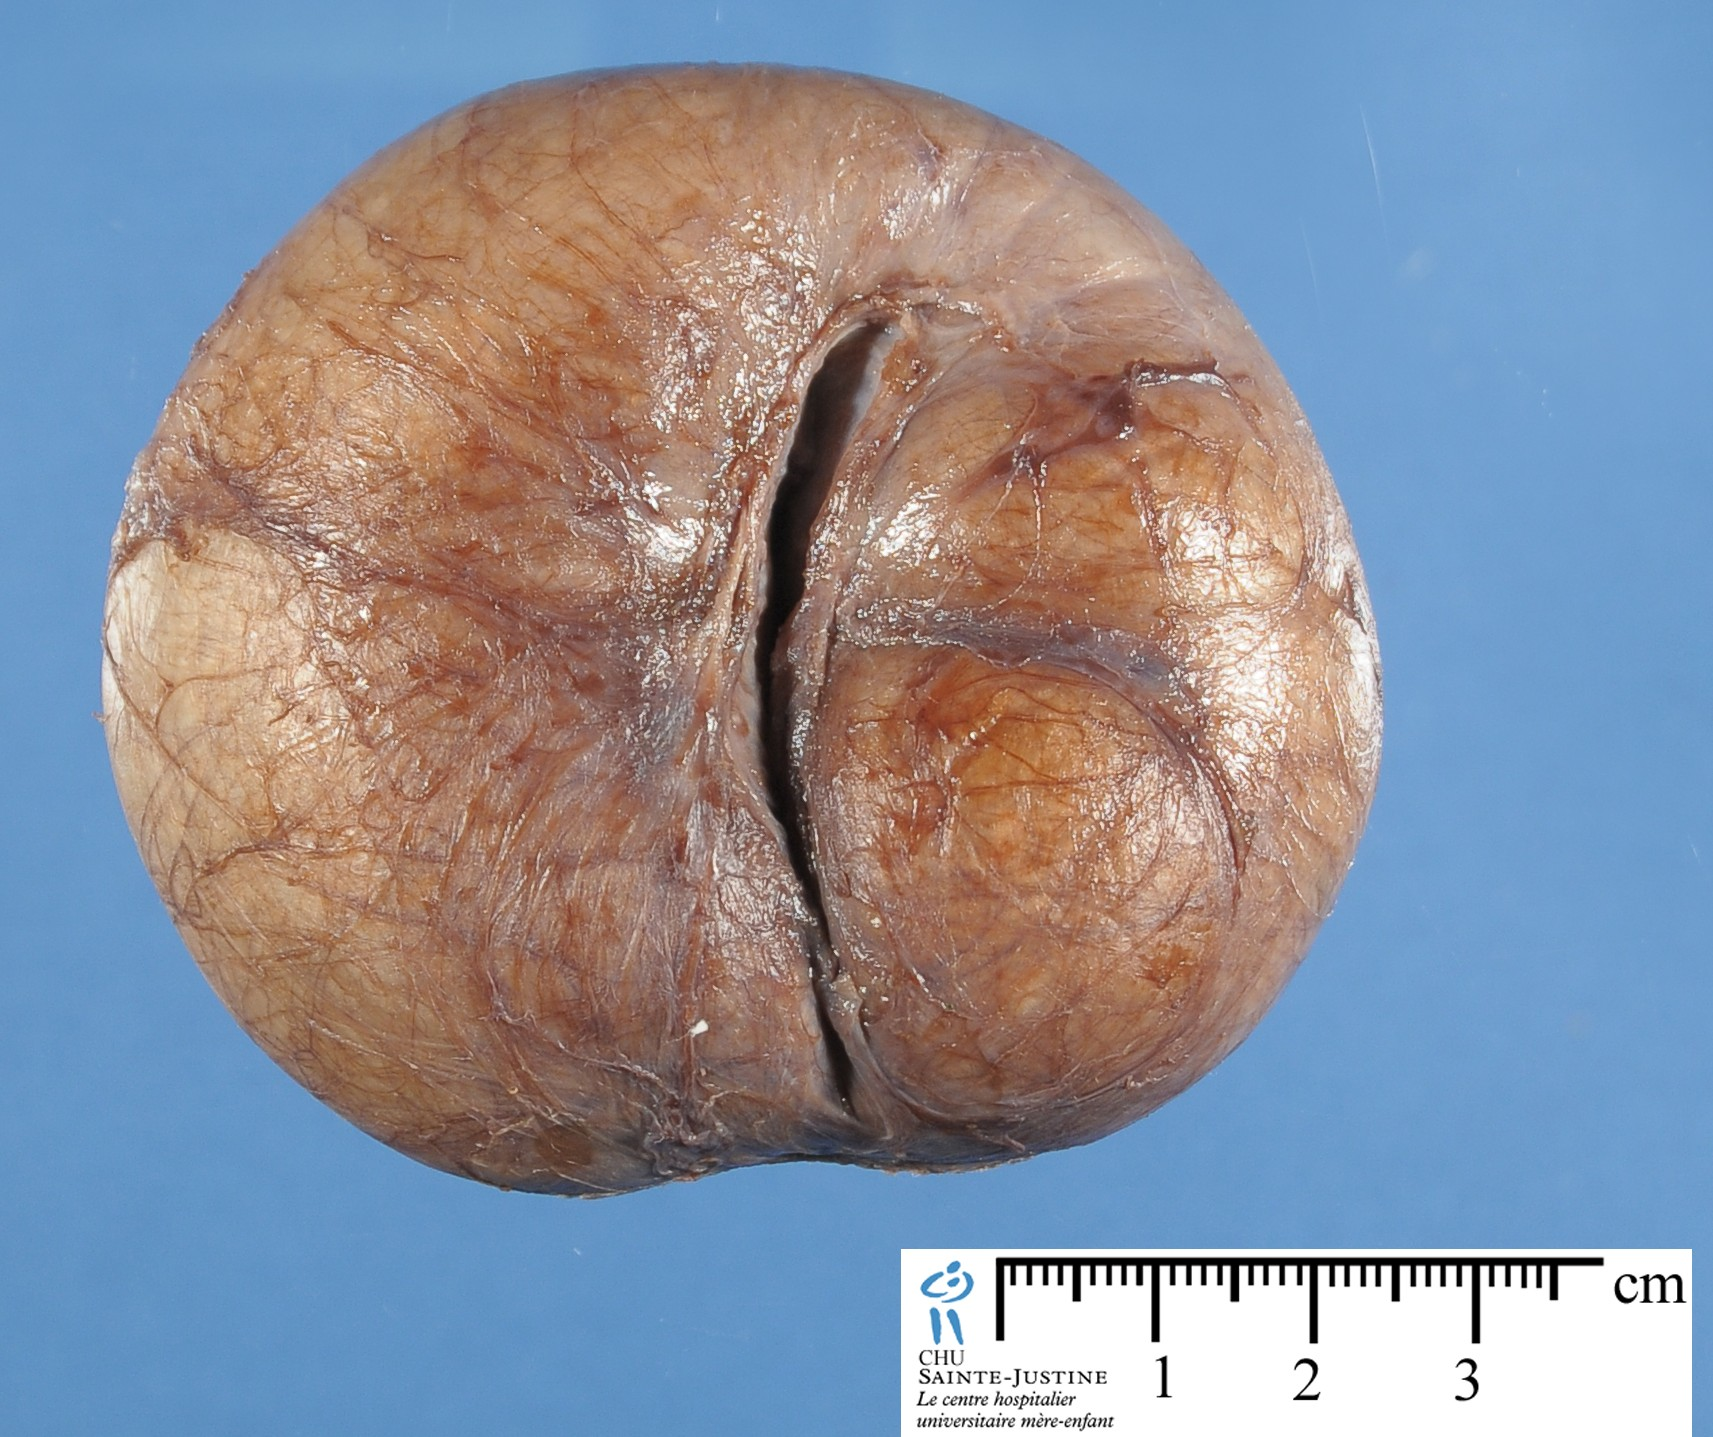 Pictures of cysts on penis